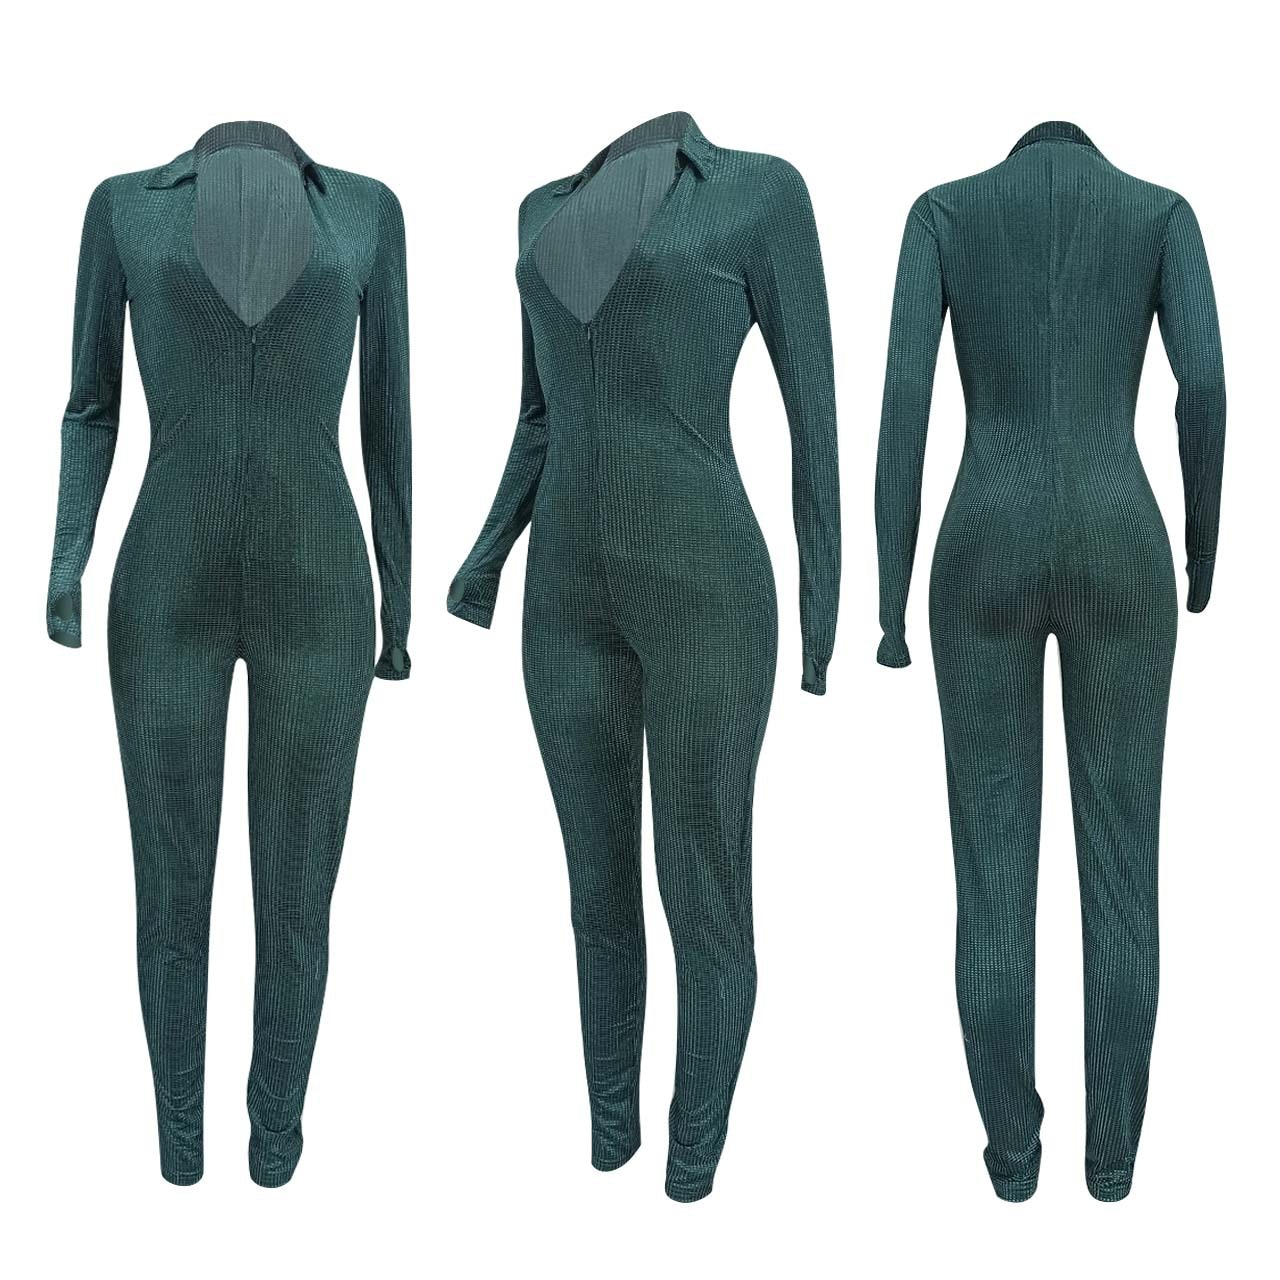 Bulk Wholesale Items Lots Velvet One Piece Club Overall for Women Retro Deep V Neck Long Sleeve Romper Sexy Zipper Skinny Outfit enlarge